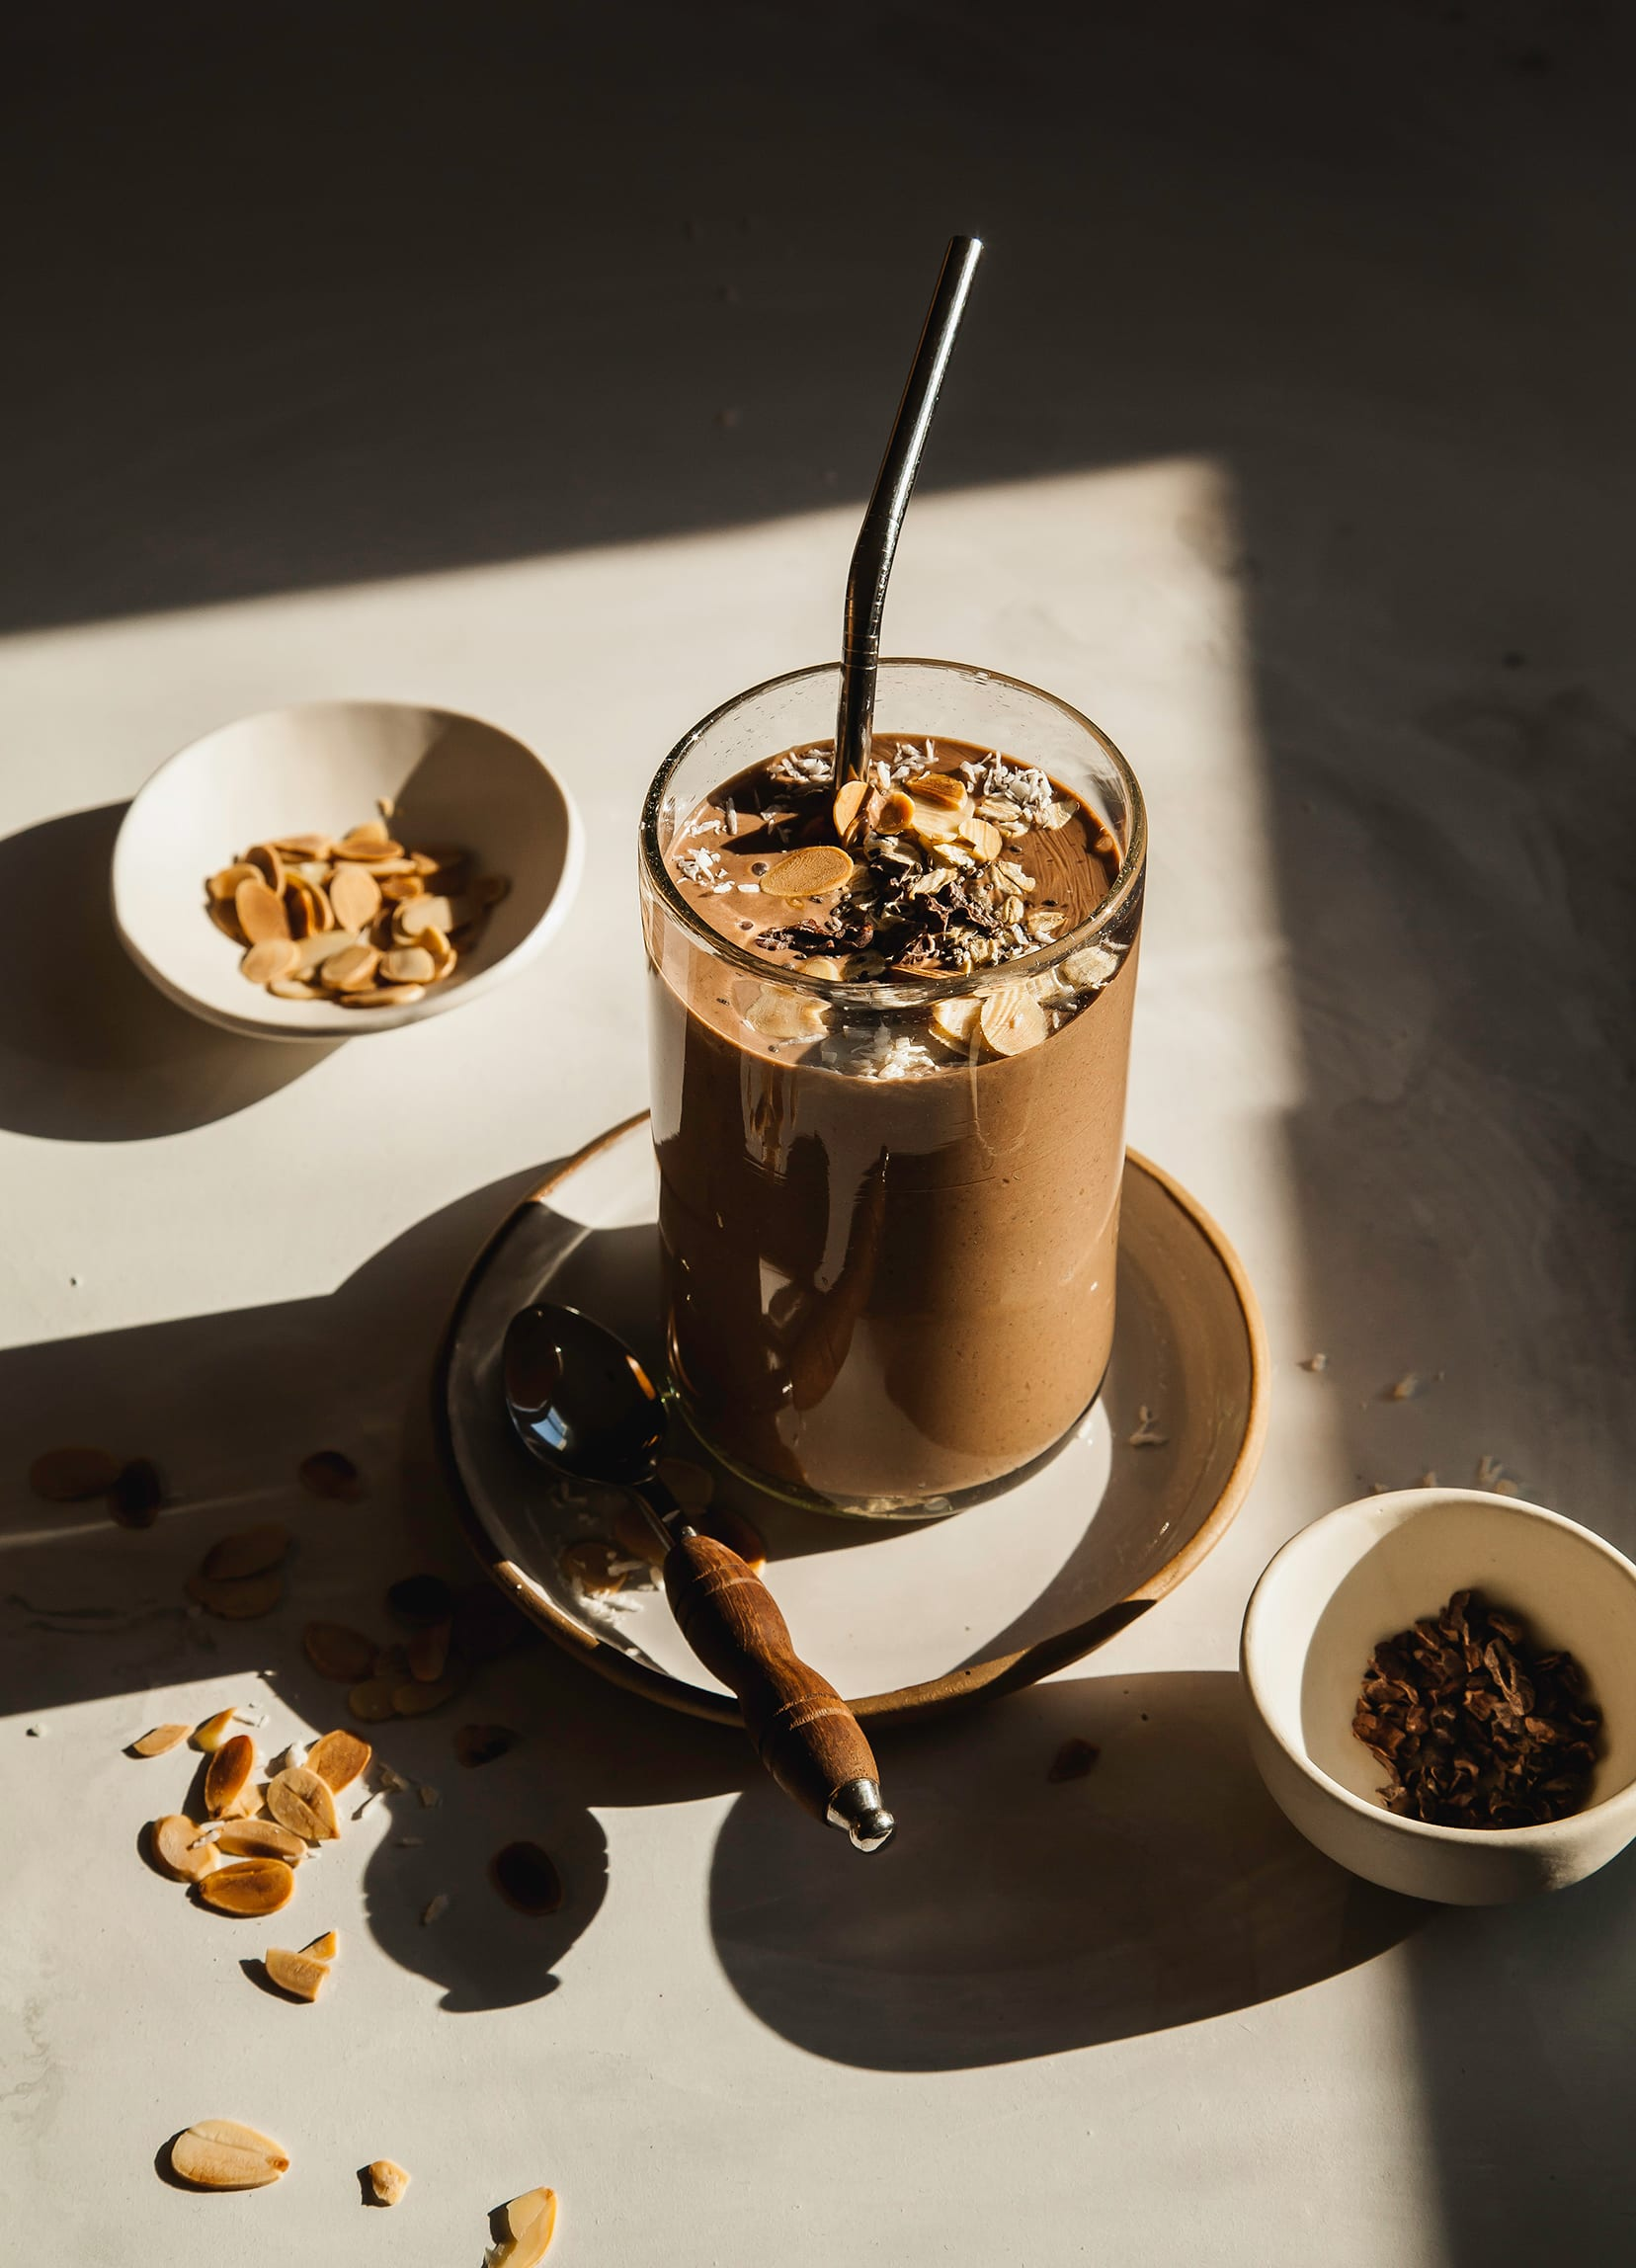 A 3/4 angle shot of a chocolate smoothie that is garnished with toasted almonds and cacao nibs. It is photographed in harsh sunlight on a mottled white background.